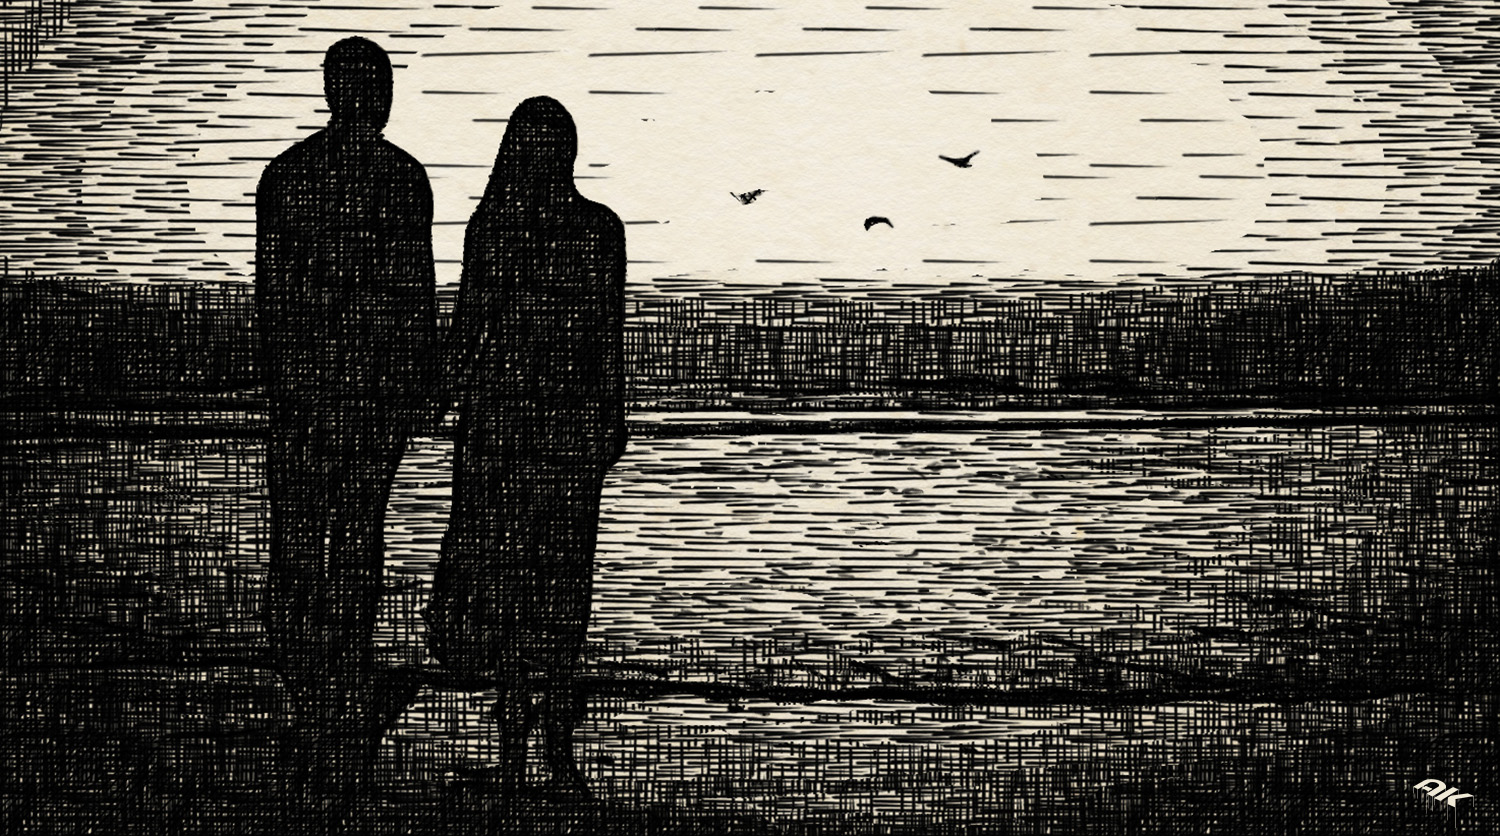 Silhouettes-Engraving-11-copyright-andrew-knutt